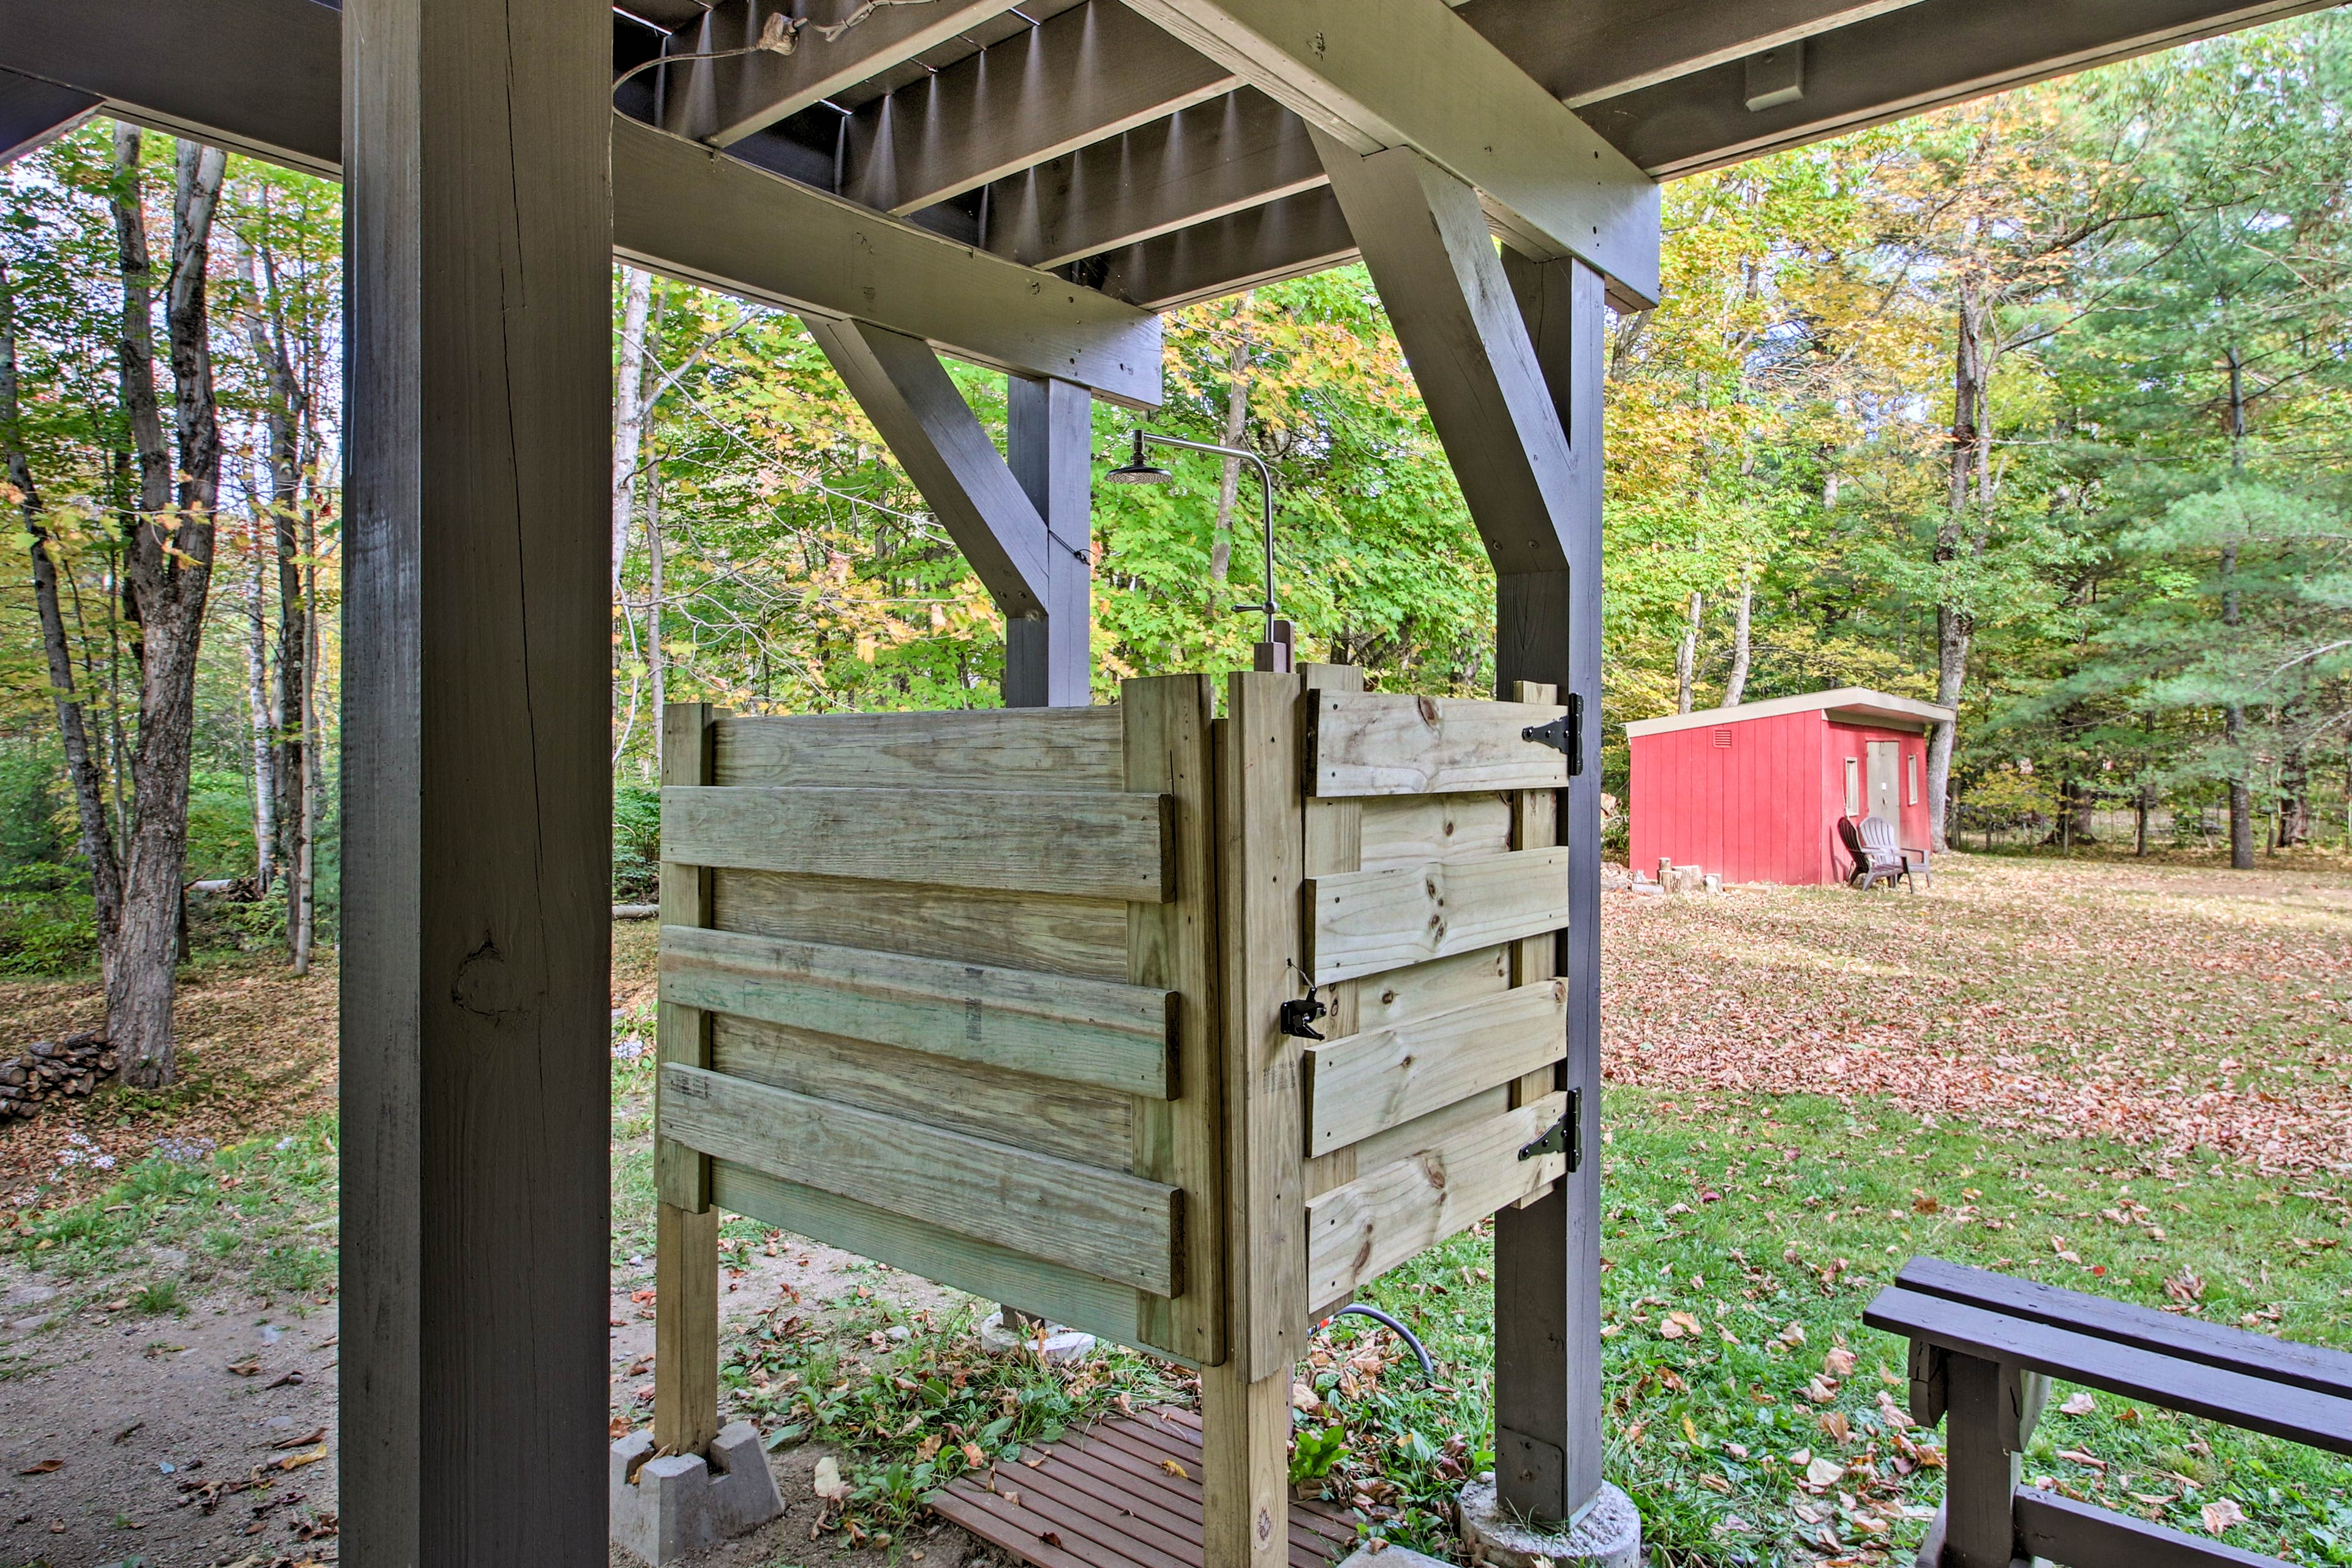 Tired of indoor showers? Use the custom outdoor one!